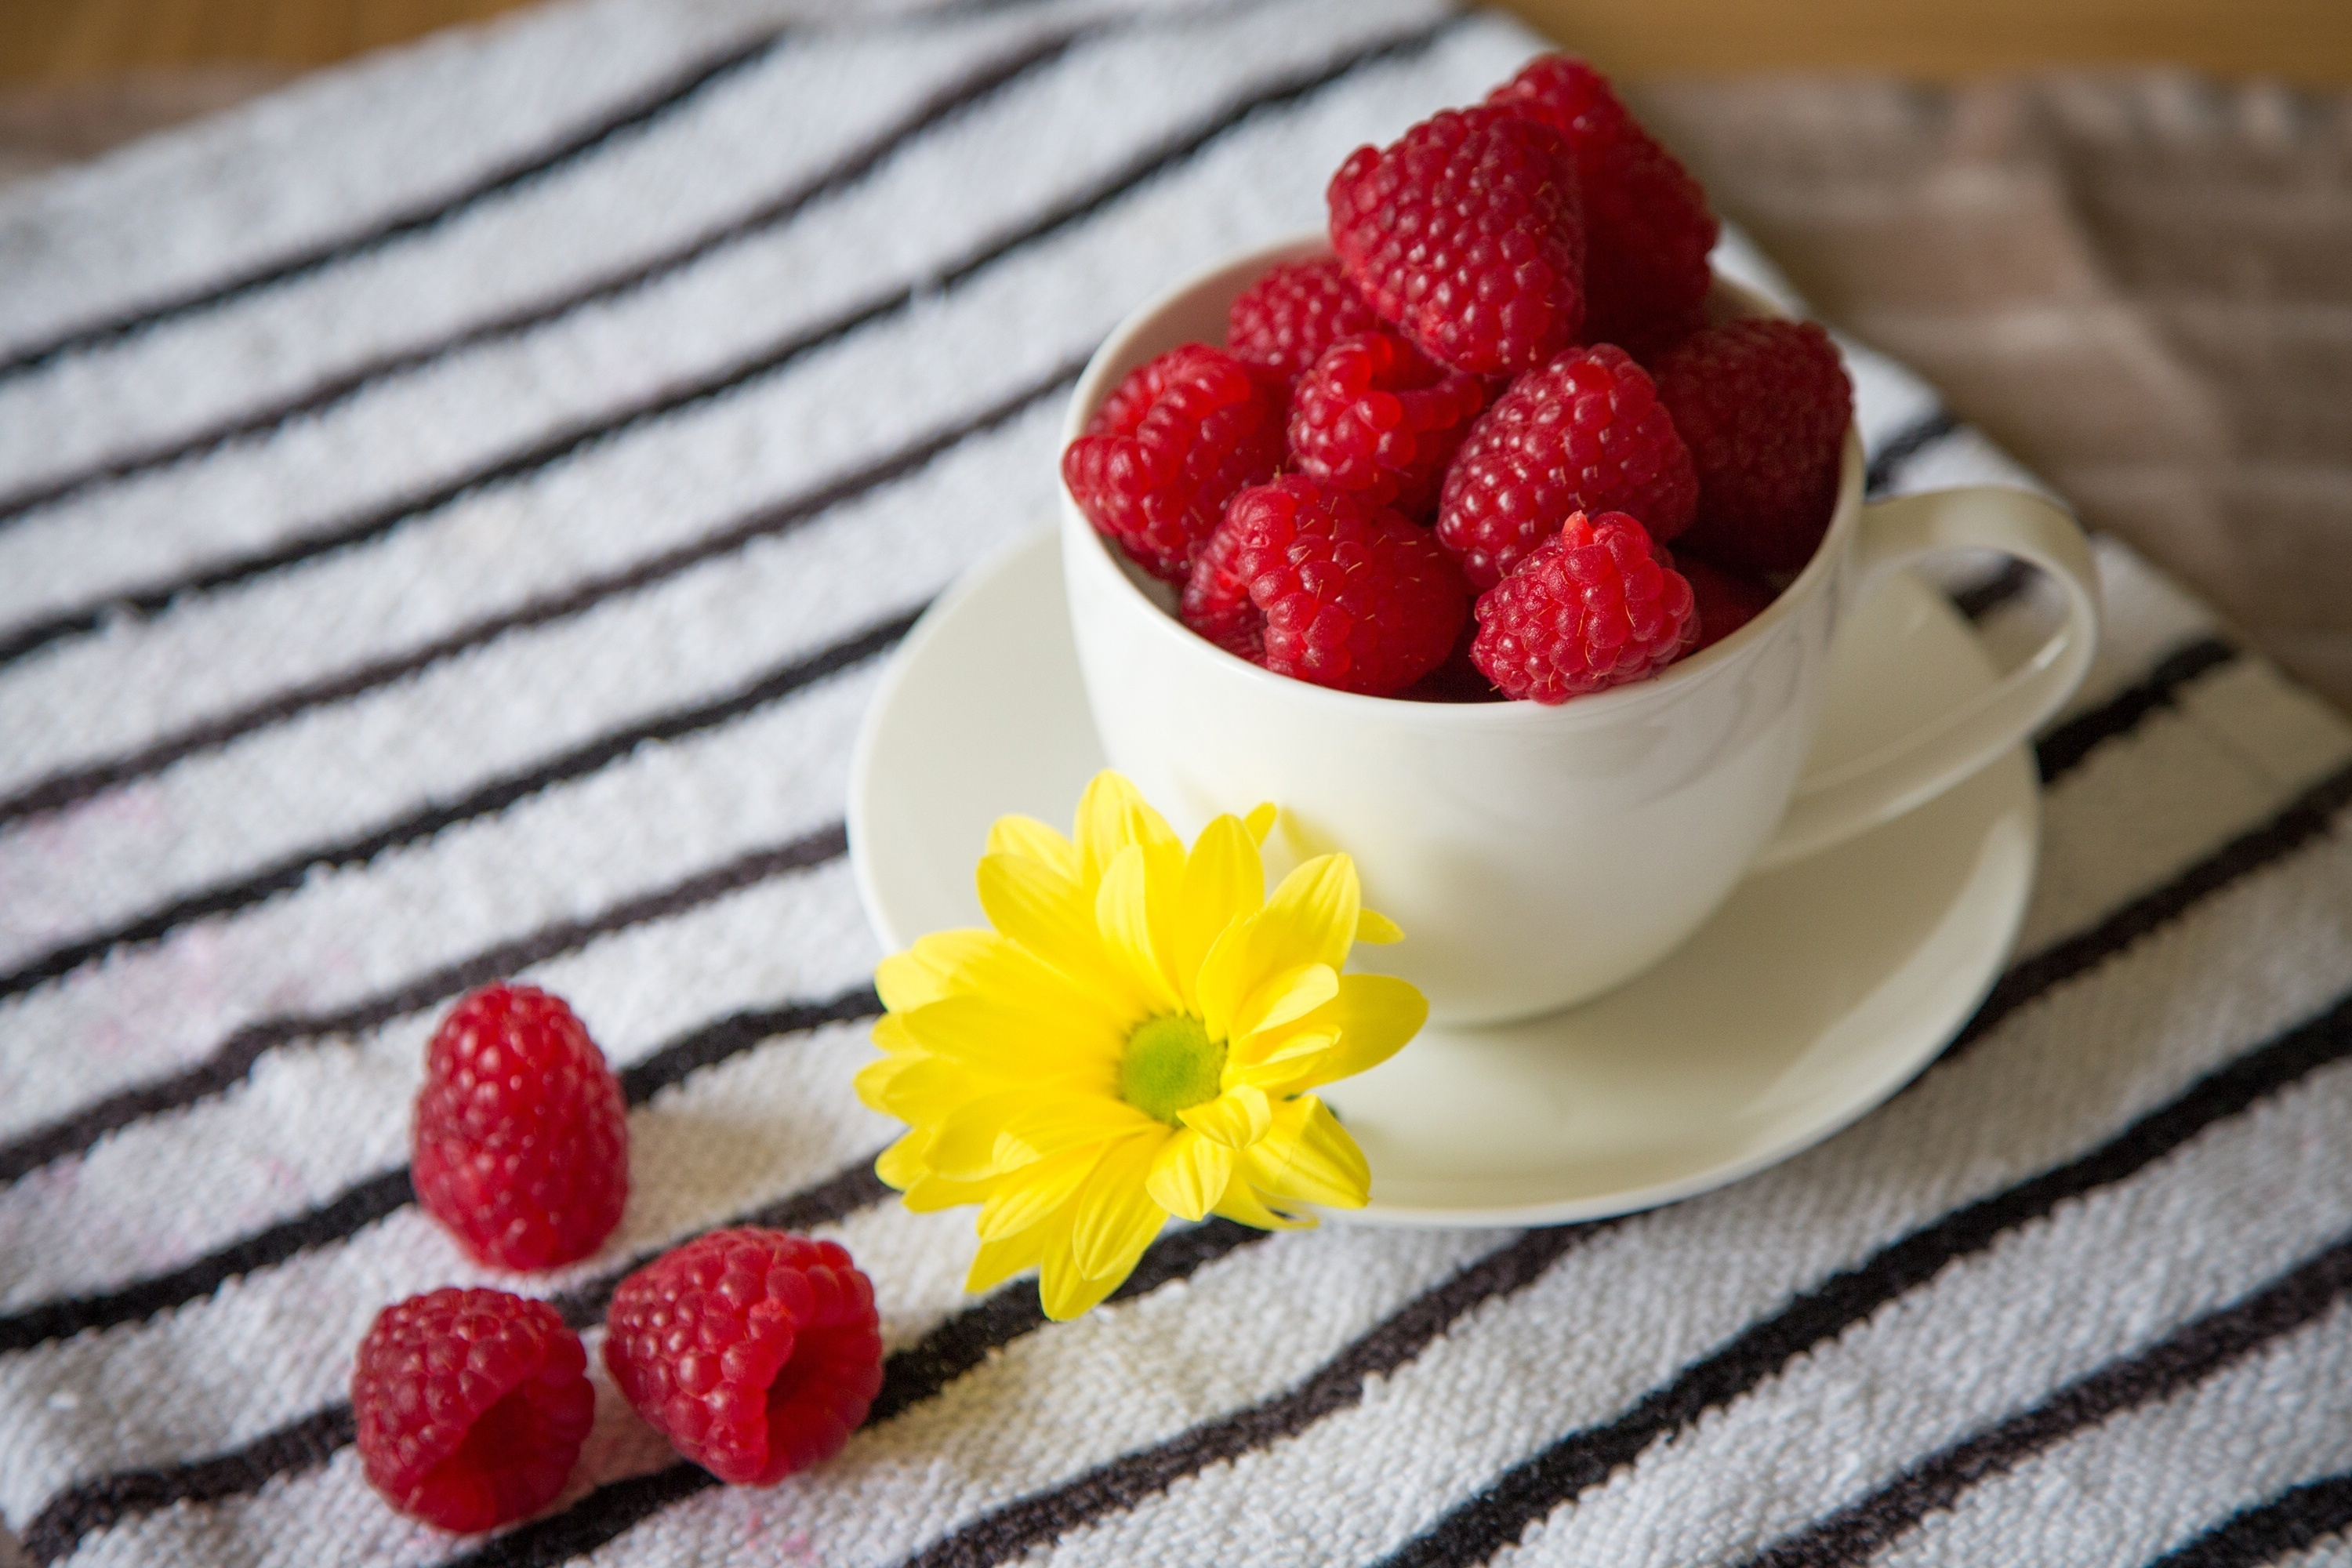 22893 download wallpaper Fruits, Food, Cups, Raspberry, Berries screensavers and pictures for free